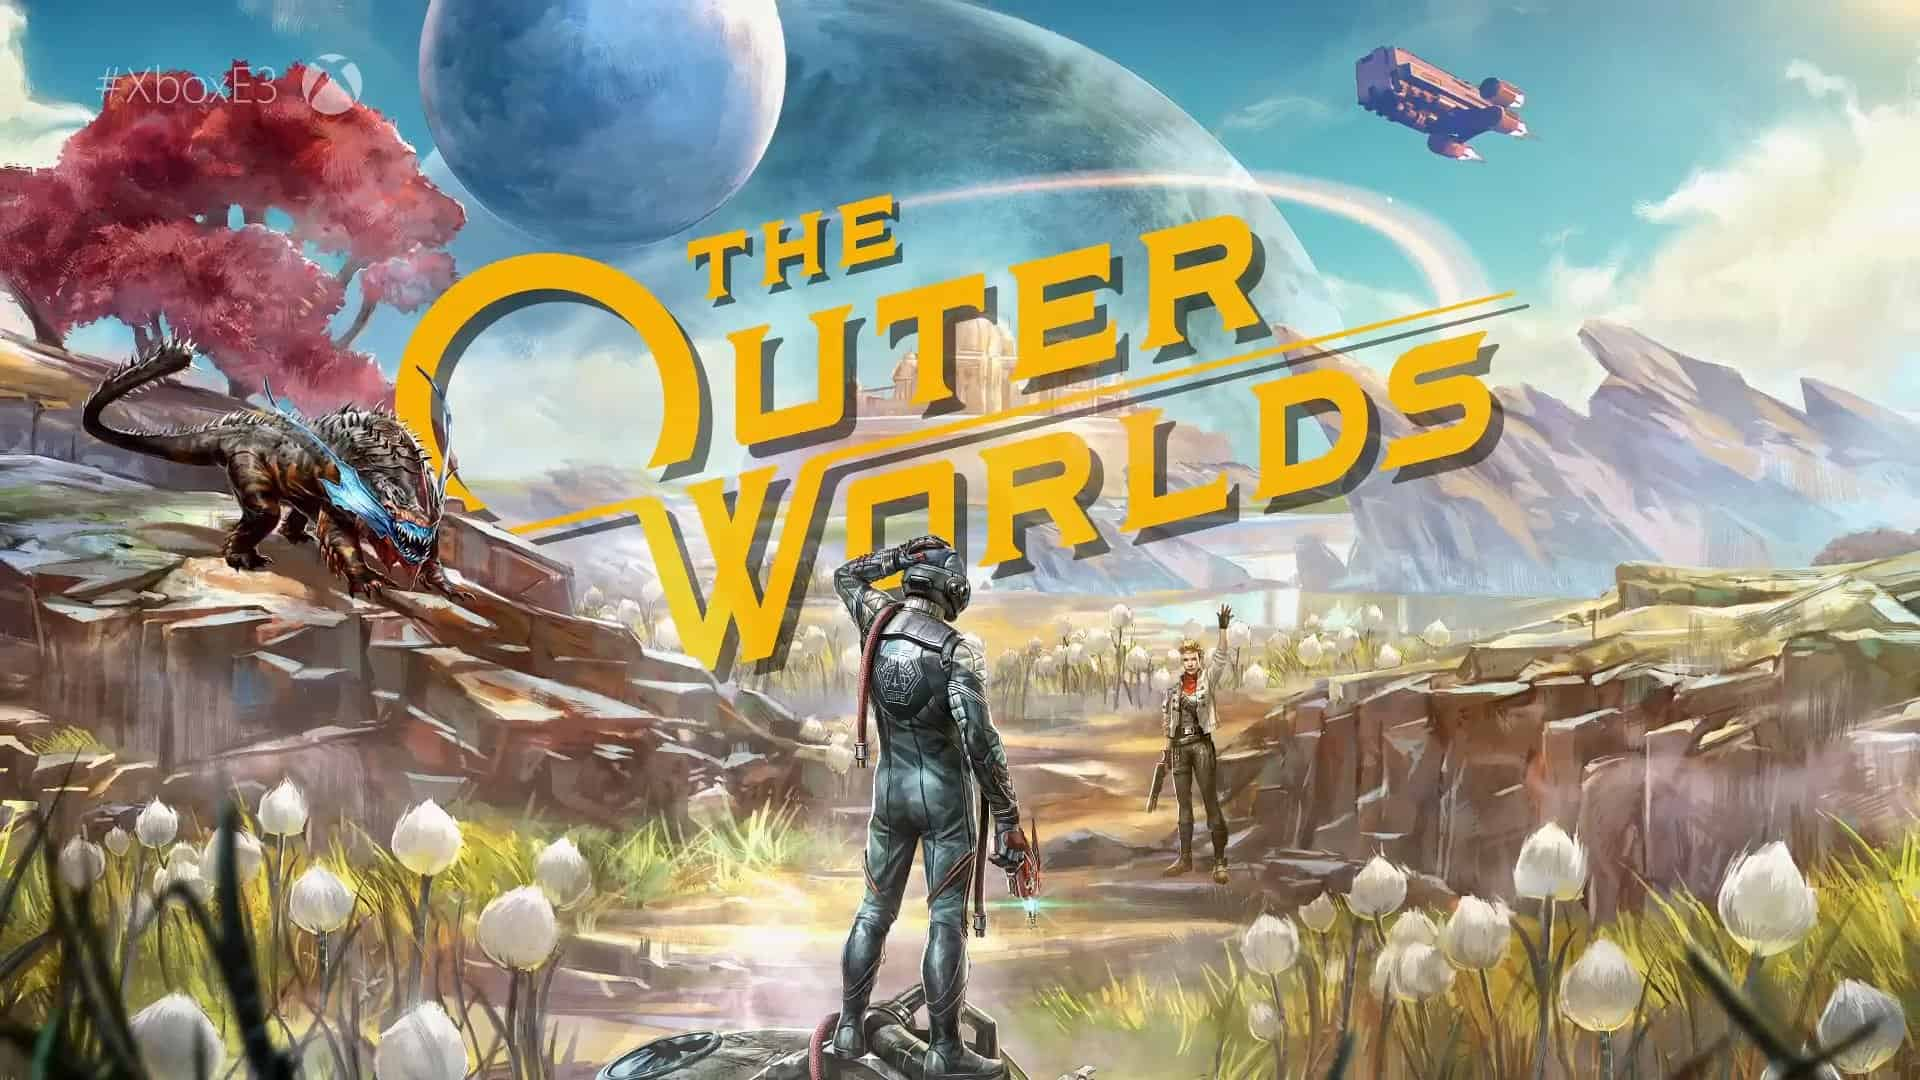 The Outer Worlds Launching October 25 2019 For Xbox One, PlayStation 4 And PC